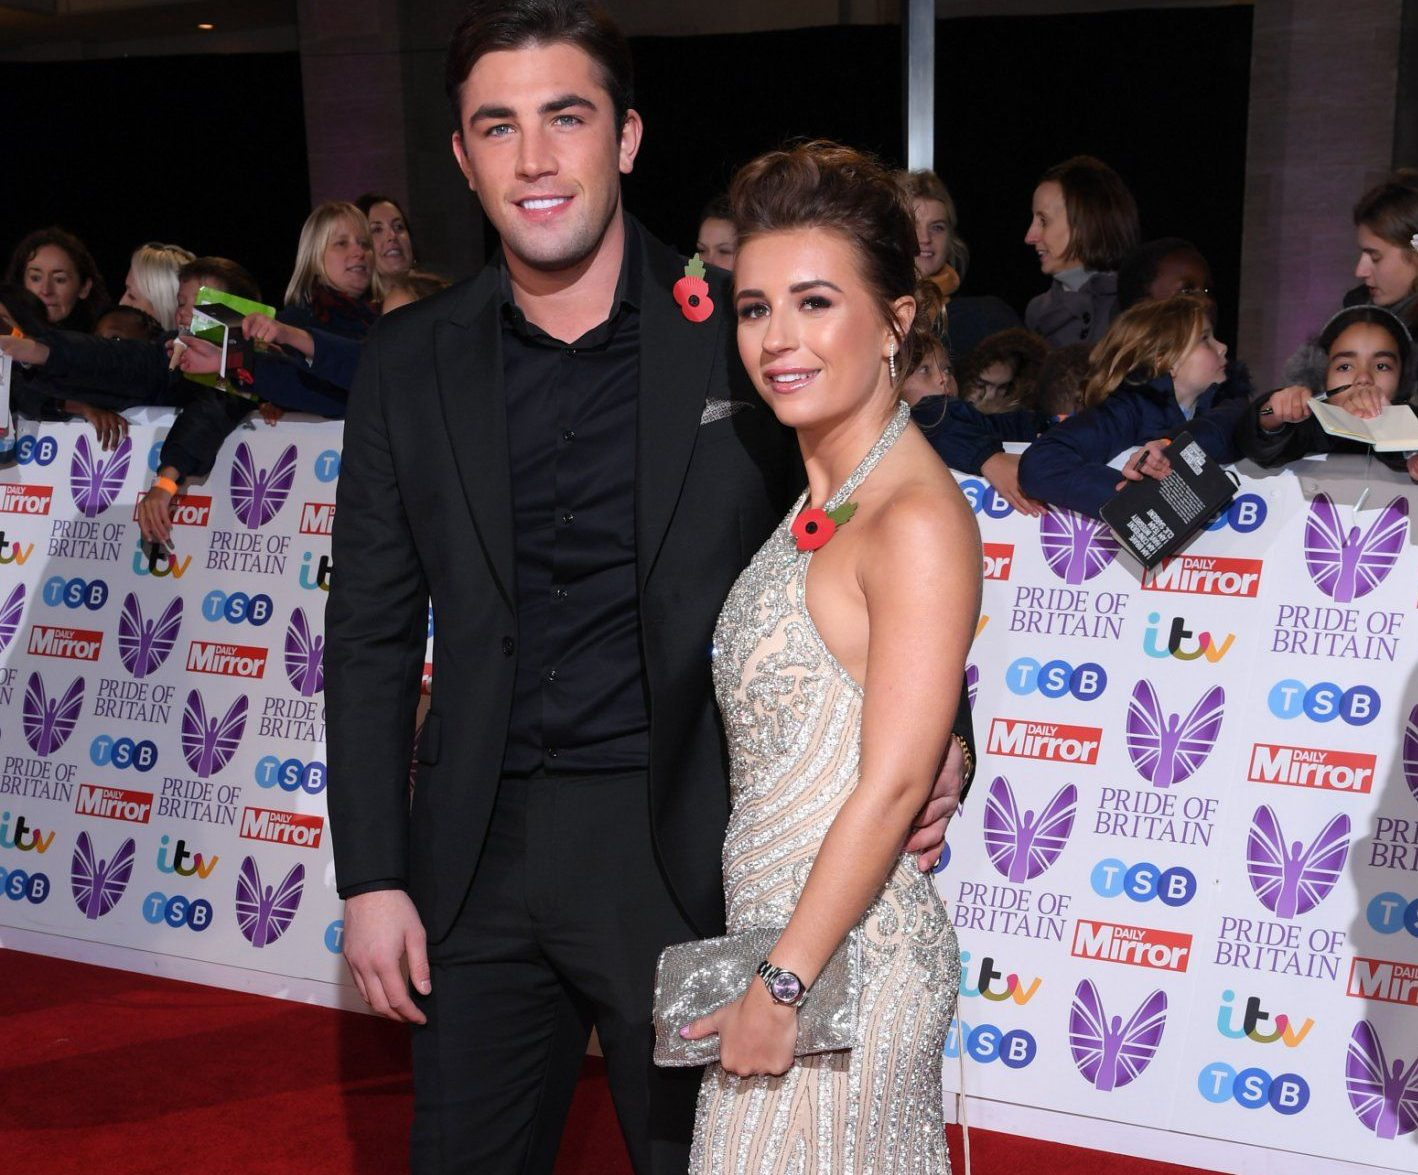 Mandatory Credit: Photo by David Fisher/REX (9947961ac) Jack Fincham and Dani Dyer Pride of Britain Awards, Grosvenor House, London, UK - 29 Oct 2018 The Daily Mirror Pride of Britain Awards, in partnership with TSB, will broadcast on ITV on 6th November at 8pm